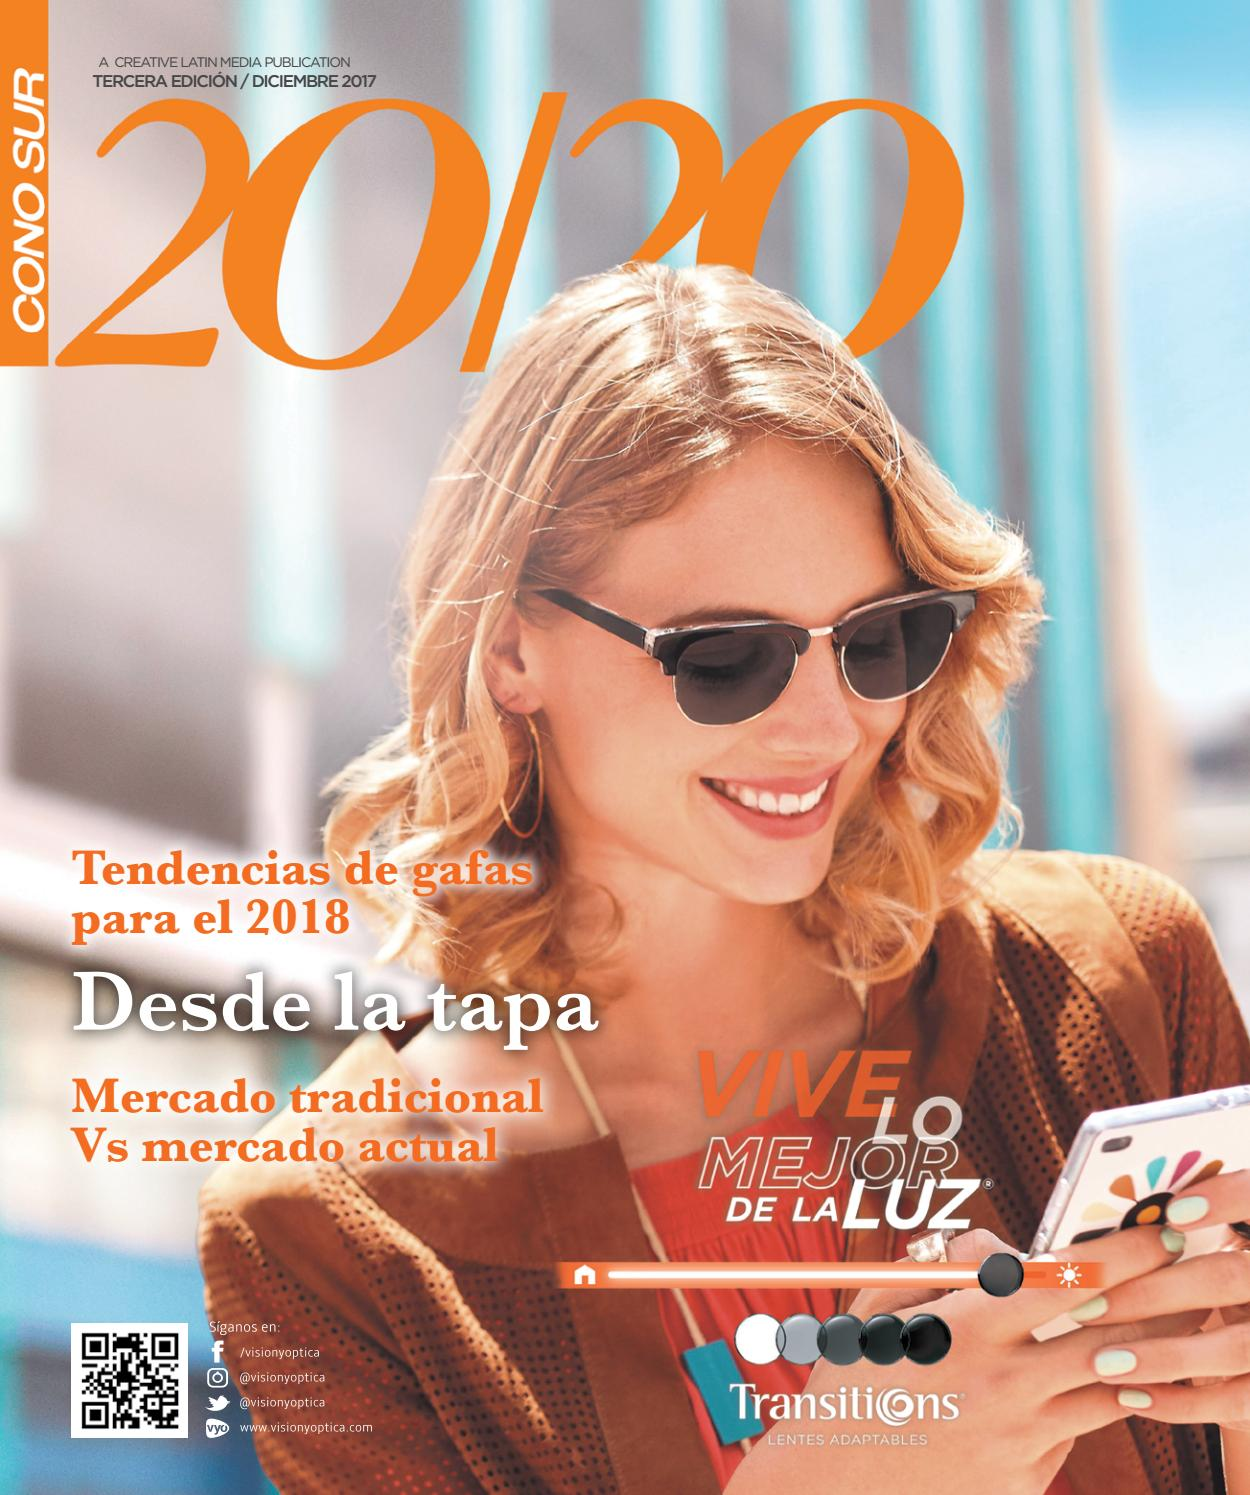 ded2035cb6 Revista 20/20 Cono Sur Tercera Edición by Creative Latin Media LLC - issuu